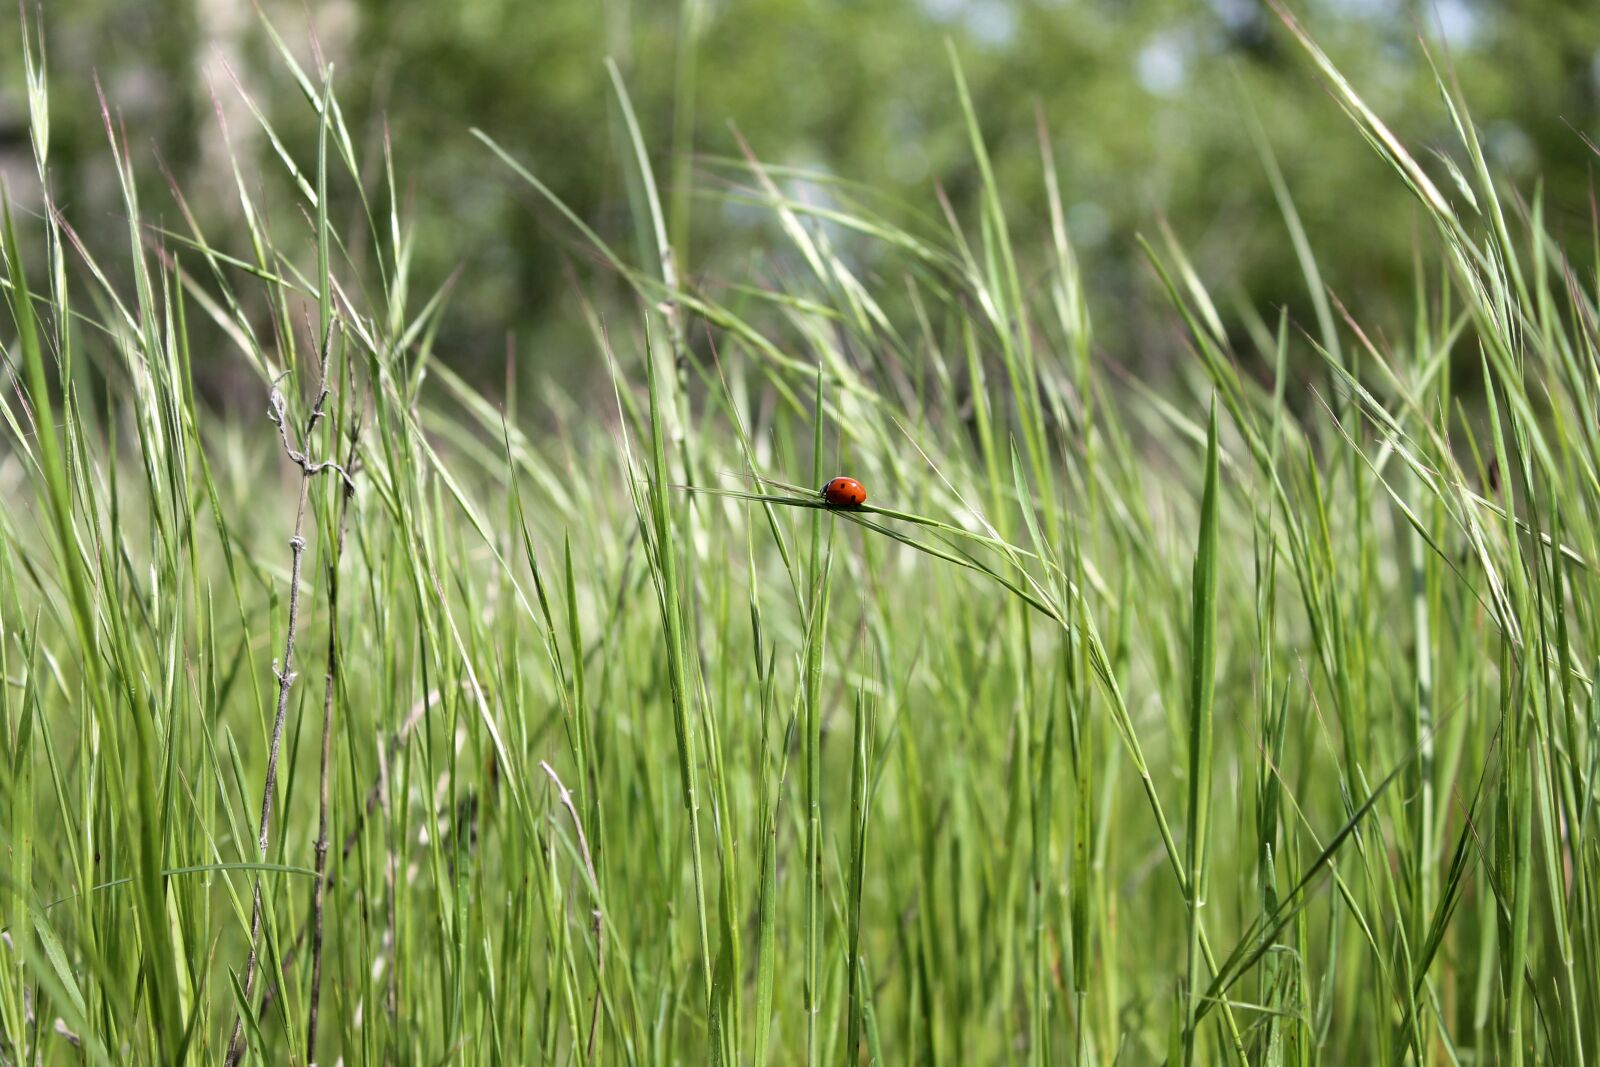 """Canon EOS 1100D (EOS Rebel T3 / EOS Kiss X50) sample photo. """"Ladybug, bug, insect"""" photography"""